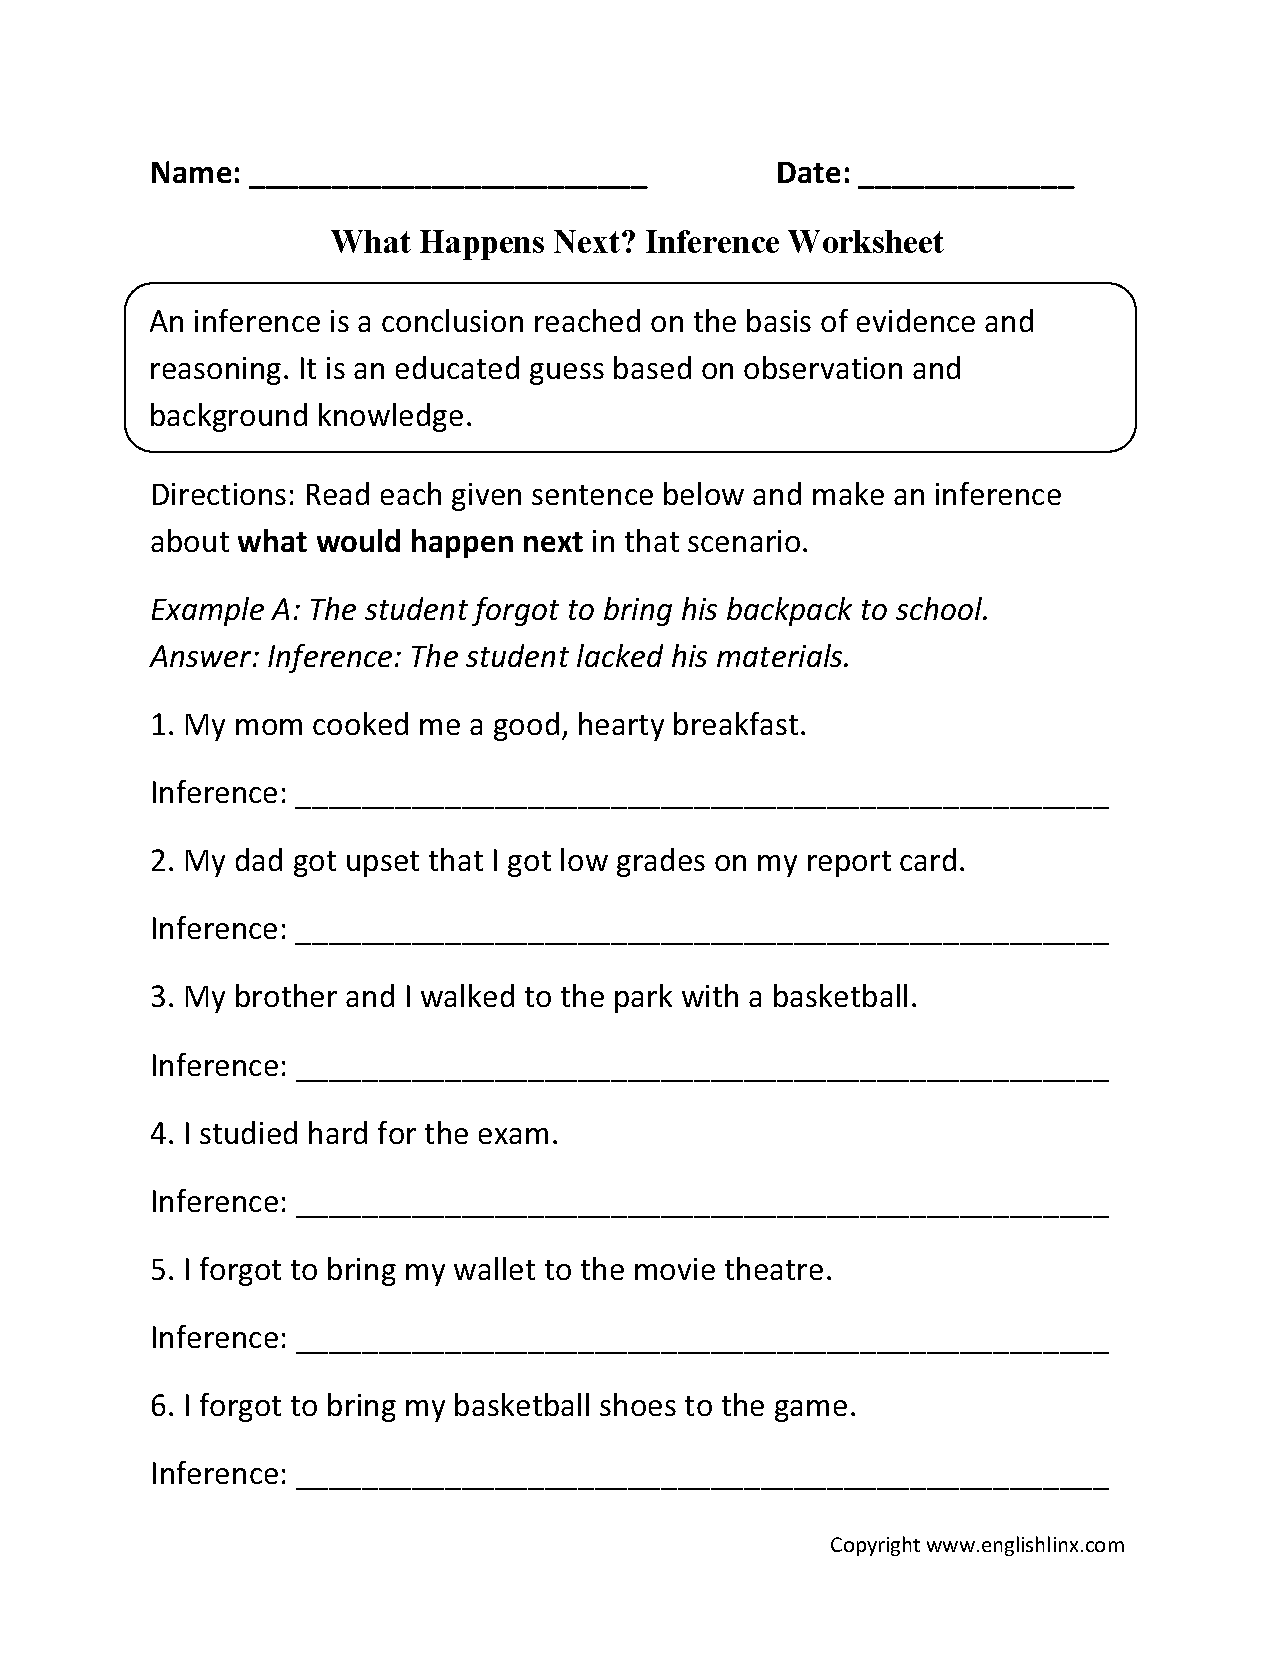 What Happens Next Inference Worksheets